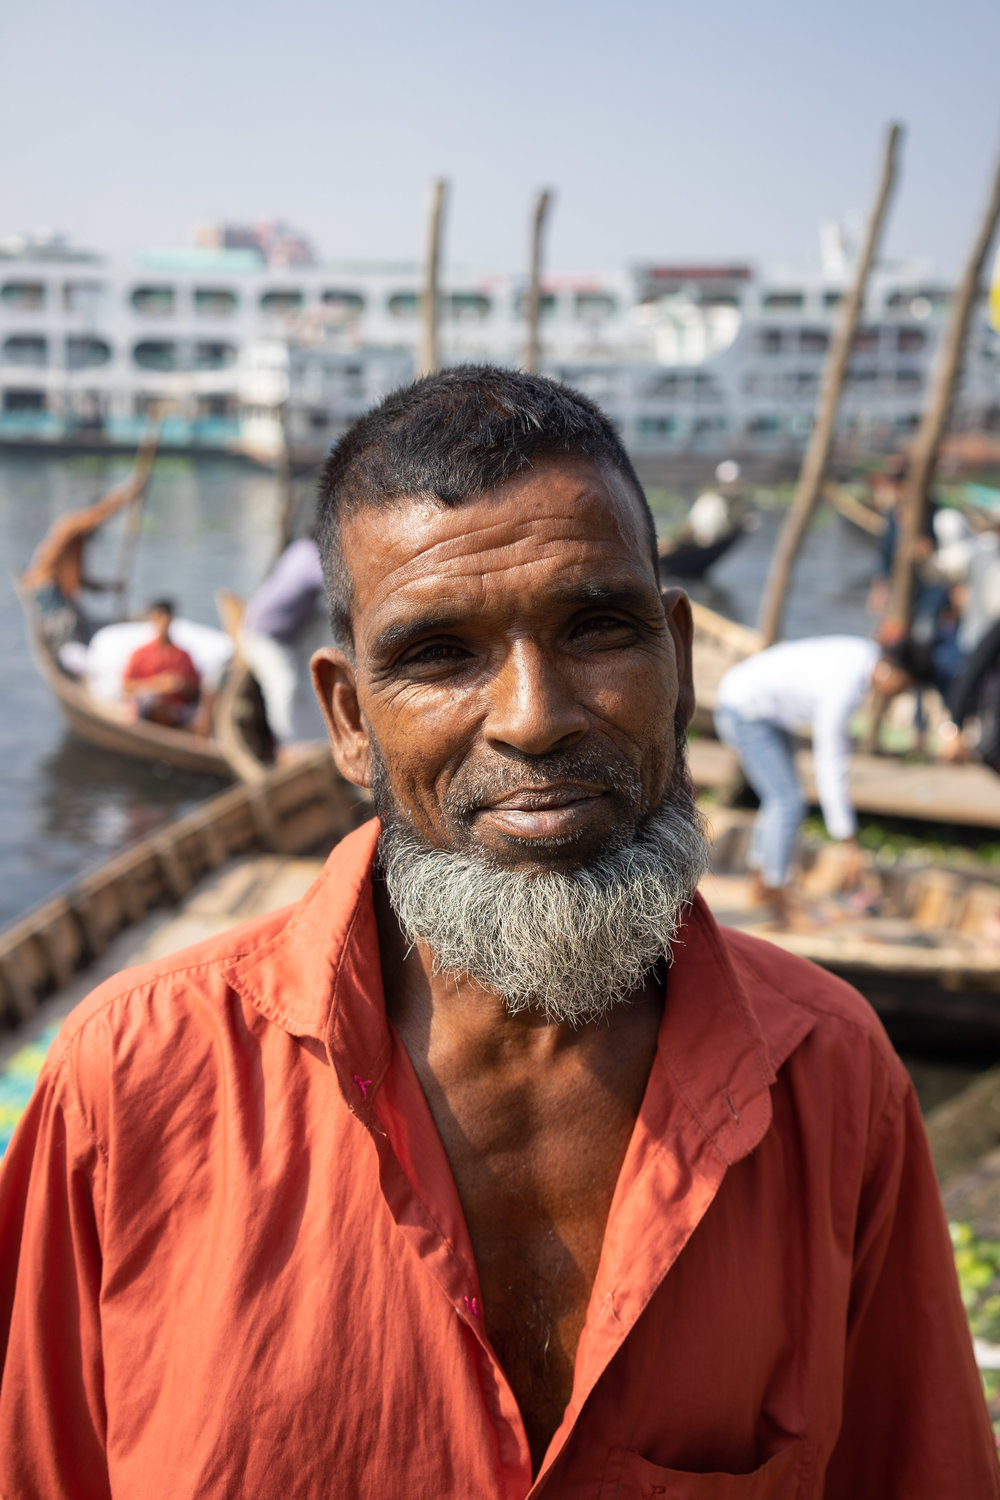 Shiraz, 55 years old, from Madaripur. He has been working on the Buriganga in Dhaka for 40 years. He used to drink this water, but now he says he would never dare.